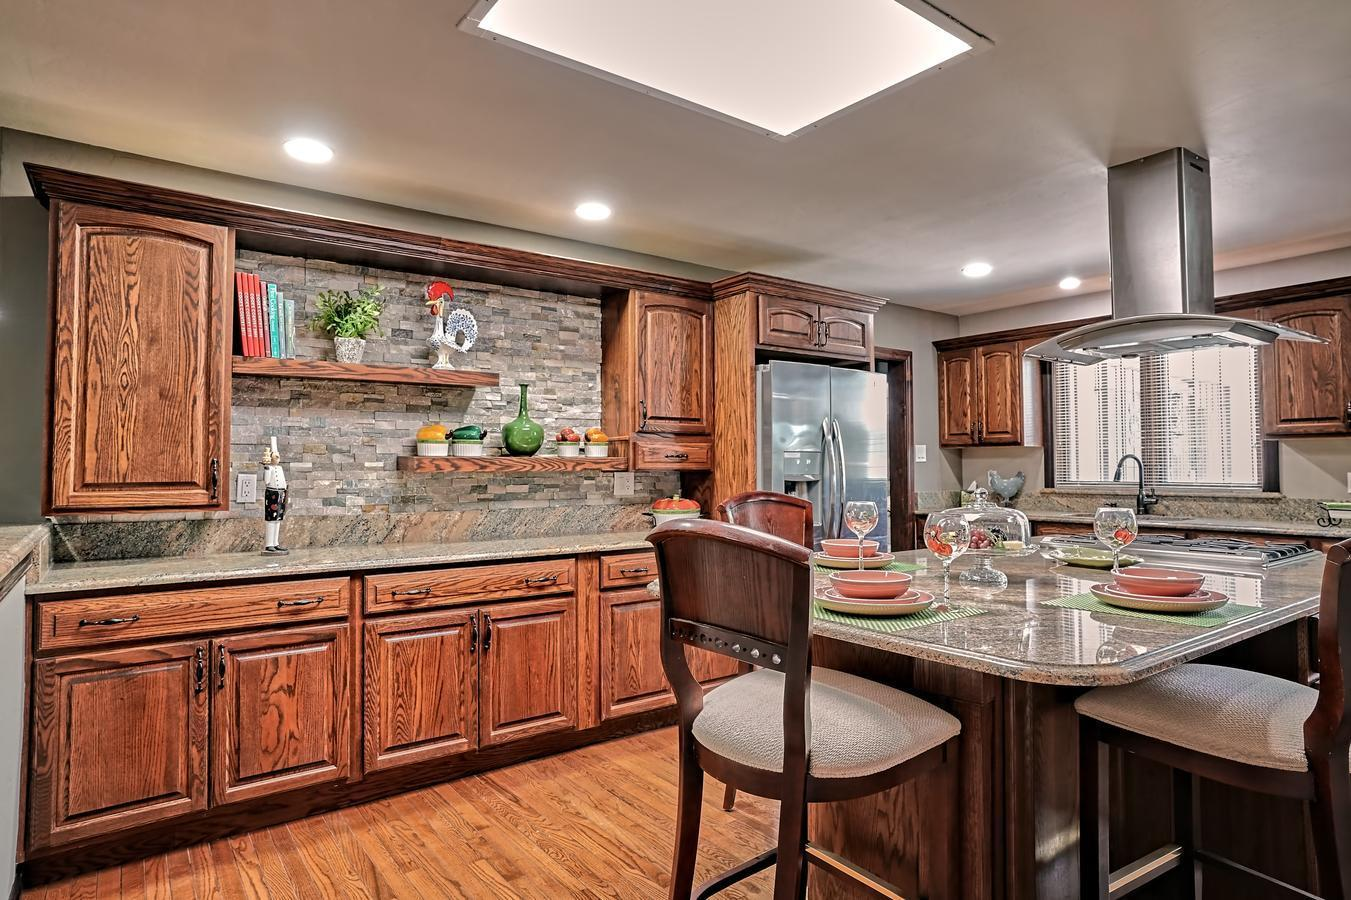 Hard to believe anyone would let this fabulous home go. Now you have a chance at it! GORGEOUS LEADED GLASS FRONT DOOR  and side lights welcome you to this absolutely lovely home in a quiet neighborhood close to services and shopping. Convenient to country club amenities at UNM Golf Club & Tennis or Tennis Club of Albuquerque for family recreation. New roof w/ 10-year warranty, Pella windows, Anderson wooden exterior doors, 2 HVAC units, upgrades in 2012 and 2021, including electrical. Home offers 2 large living areas, fabulous kitchen with eat in bar island, fireplace, formal dining, 3 bedrooms, office, vineyard, planting areas, pond and covered patio. Come see what this wonderful home offers you -- YOU'RE HOME!